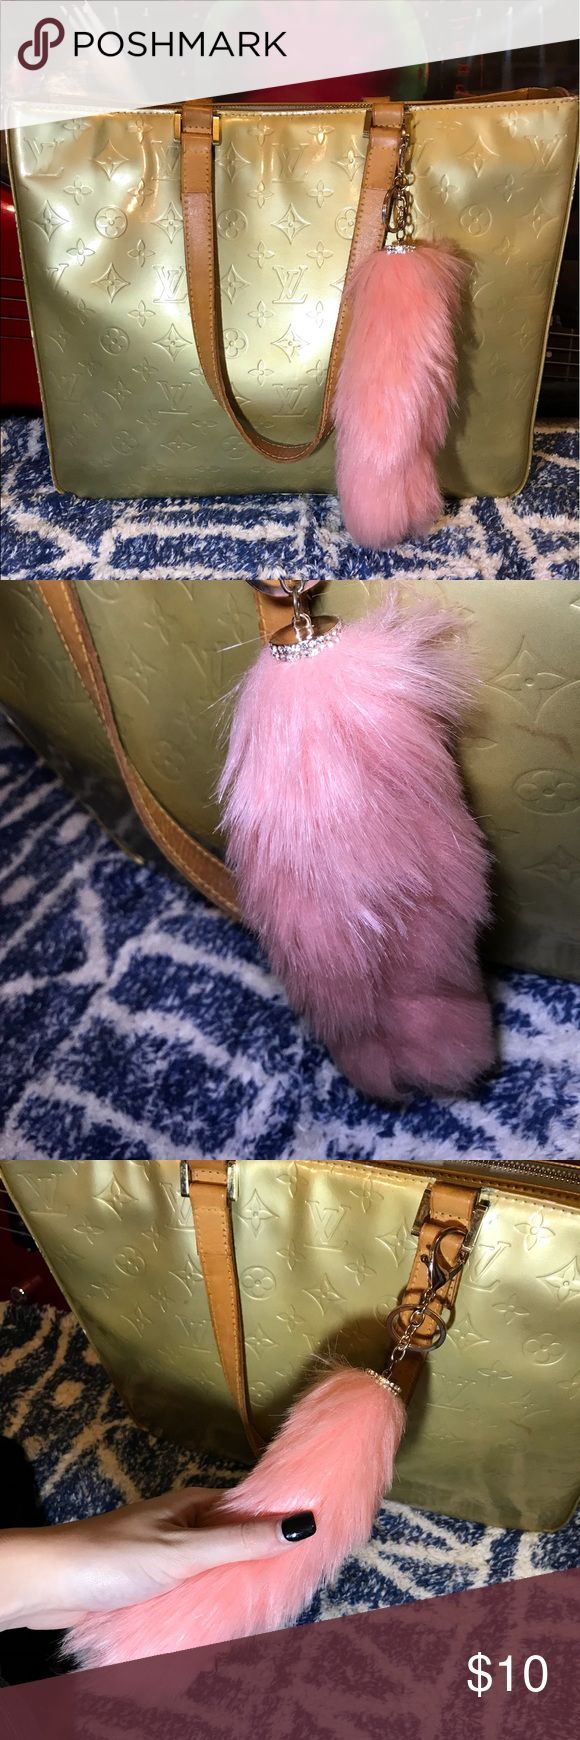 Fox tail keychain 🦊 Not real fur Accessories